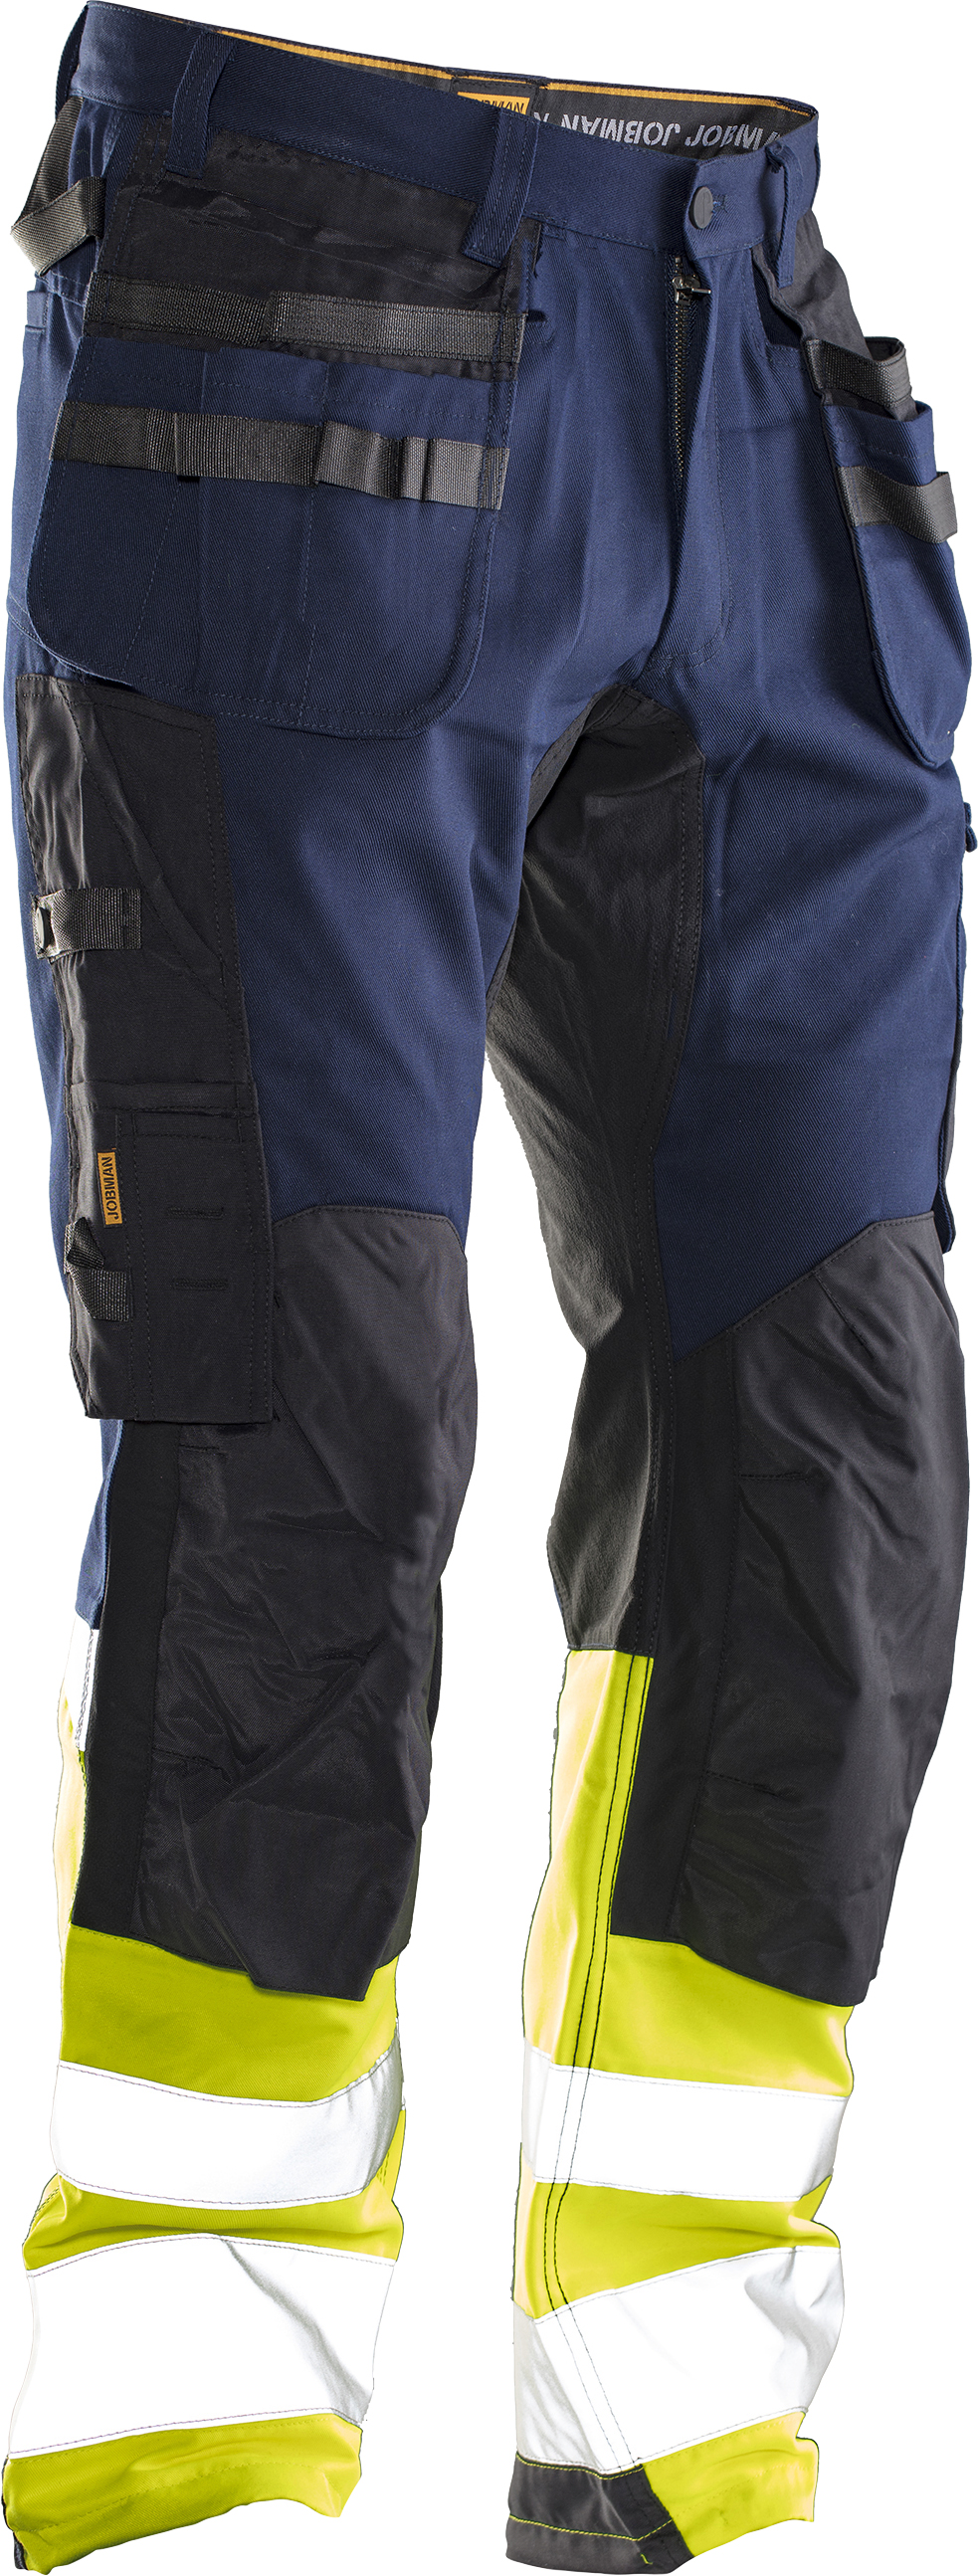 2134 Pantalon d'artisan Core stretch Hi-Vis D92 navy/jaune